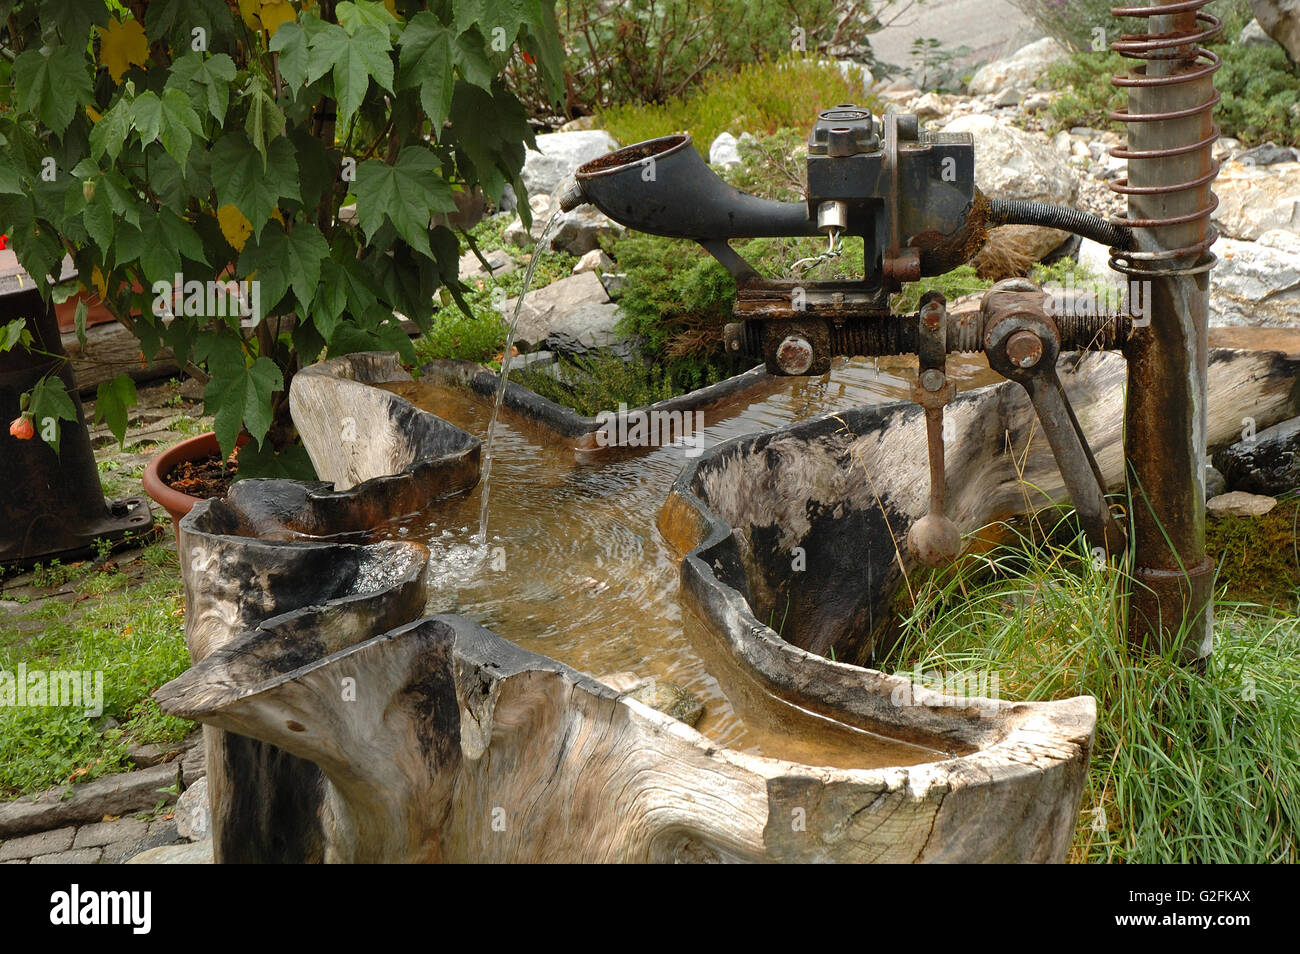 High Quality Small Unique Garden Fountain Made Of Old Metal Parts And Tree Trunk